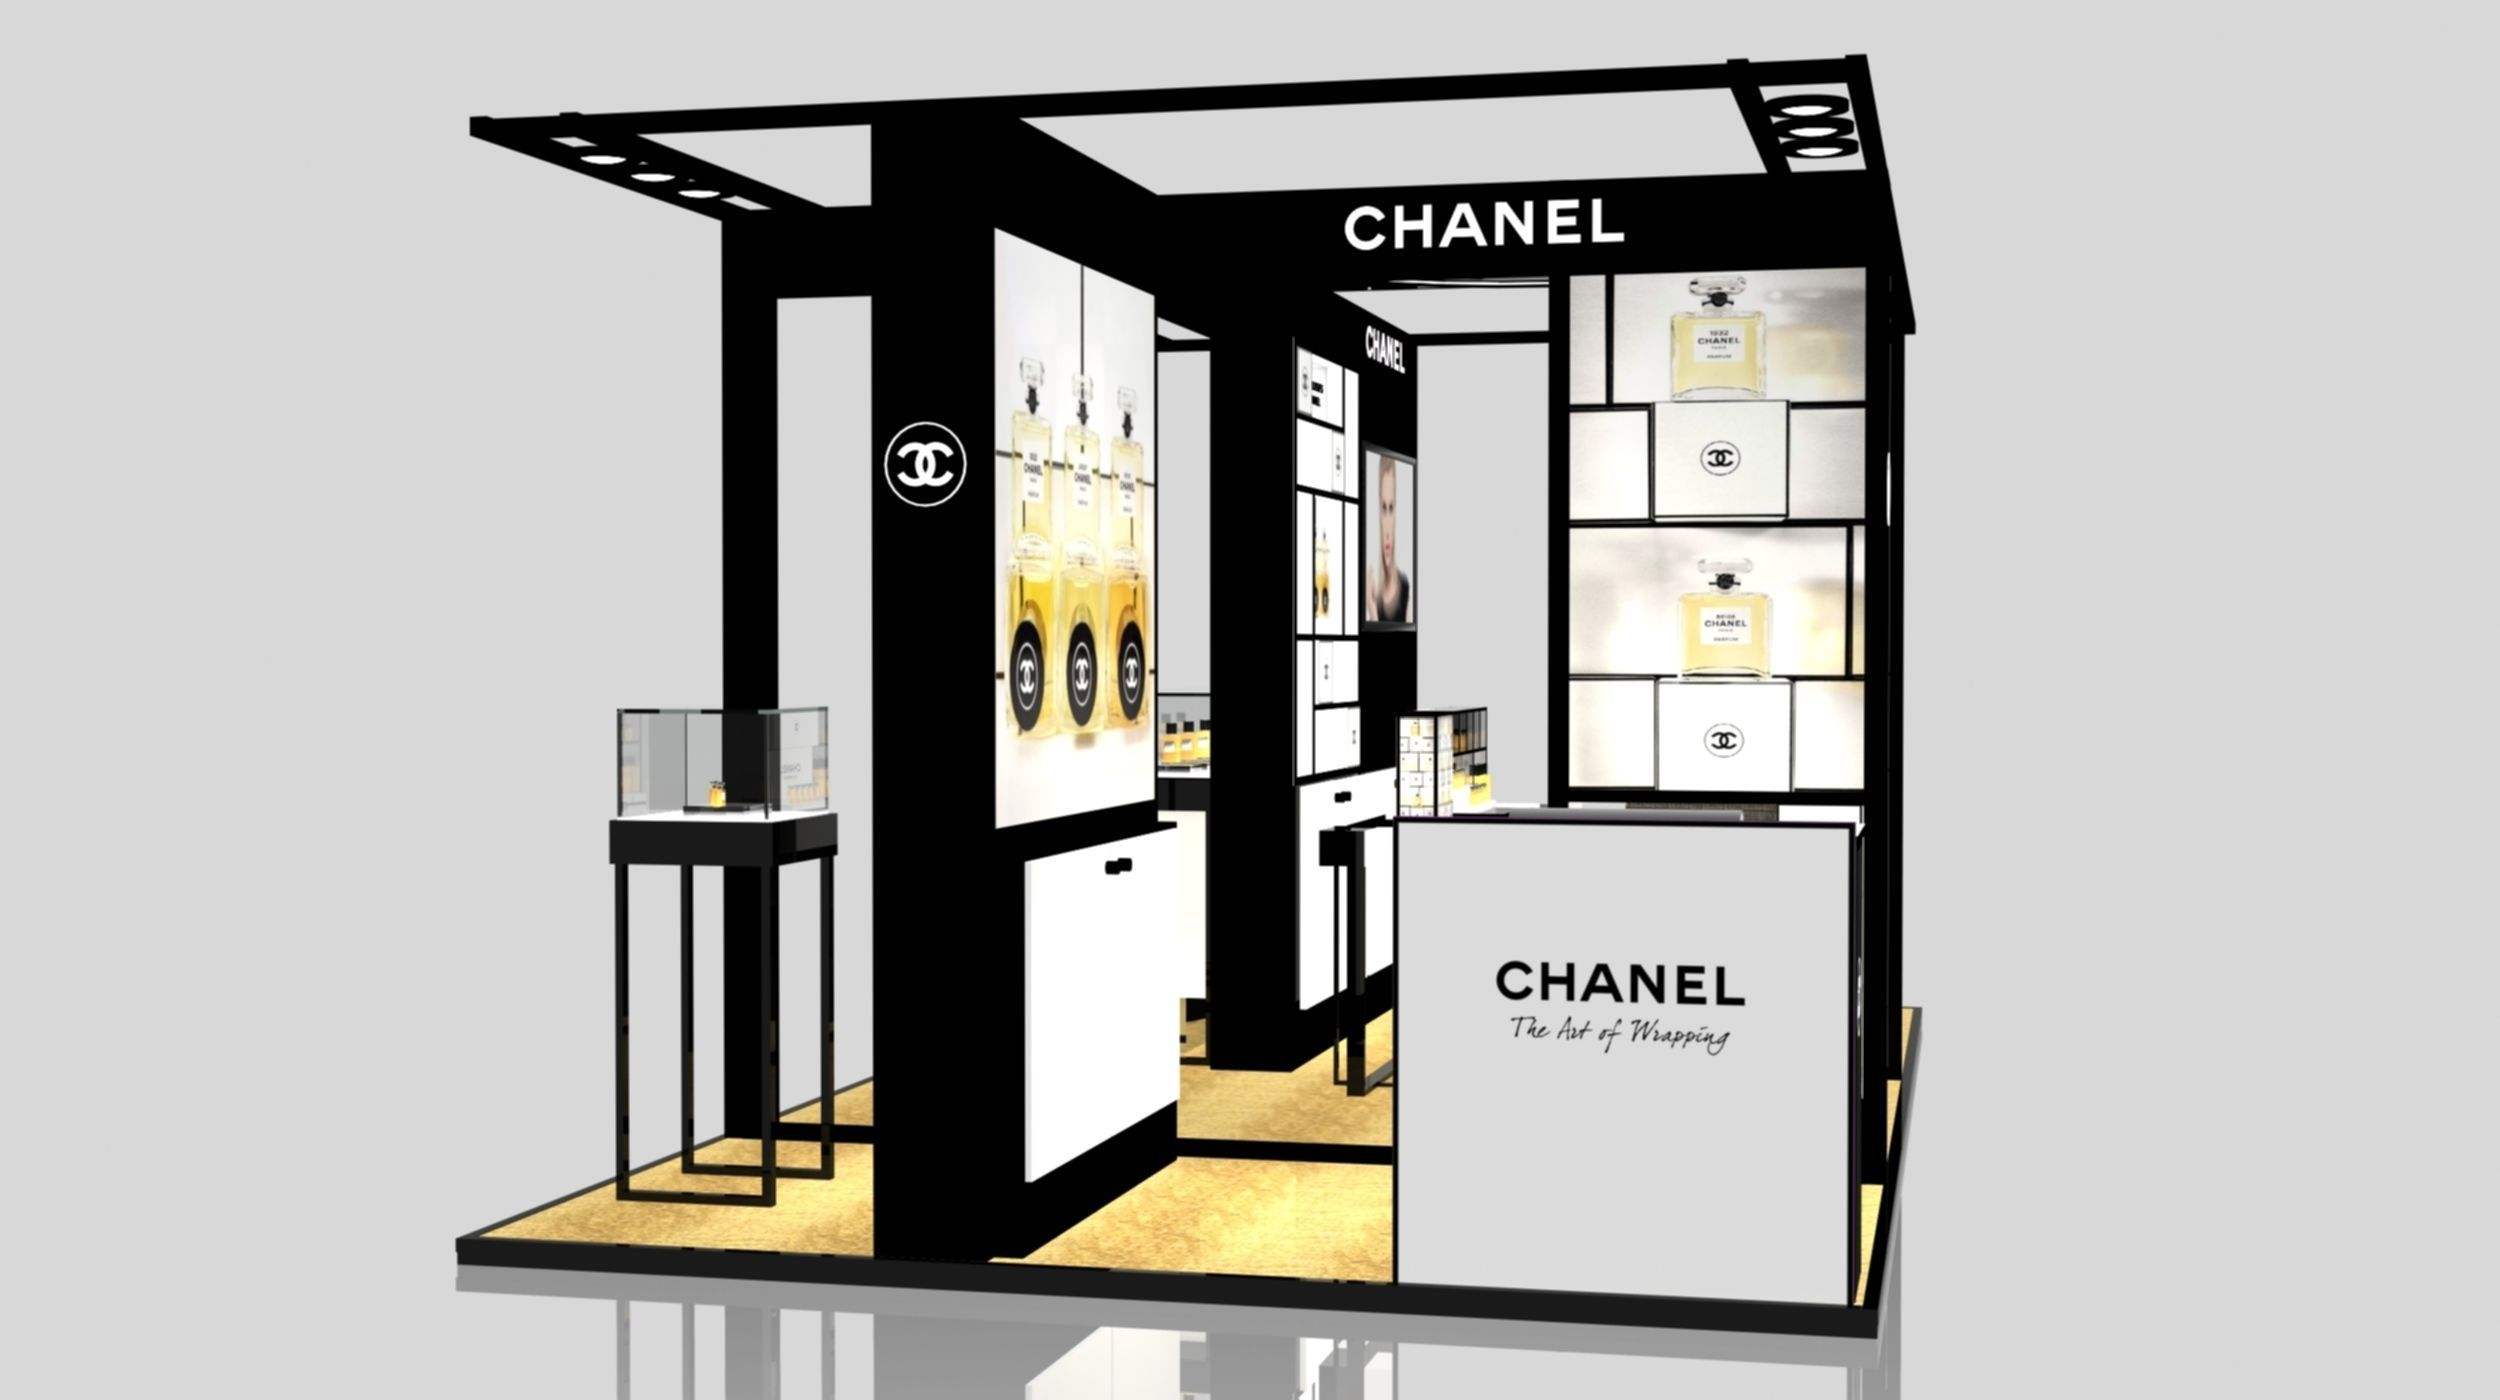 D Exhibition Stands : Exhibition stand of chanel in gum d model sldprt sldasm